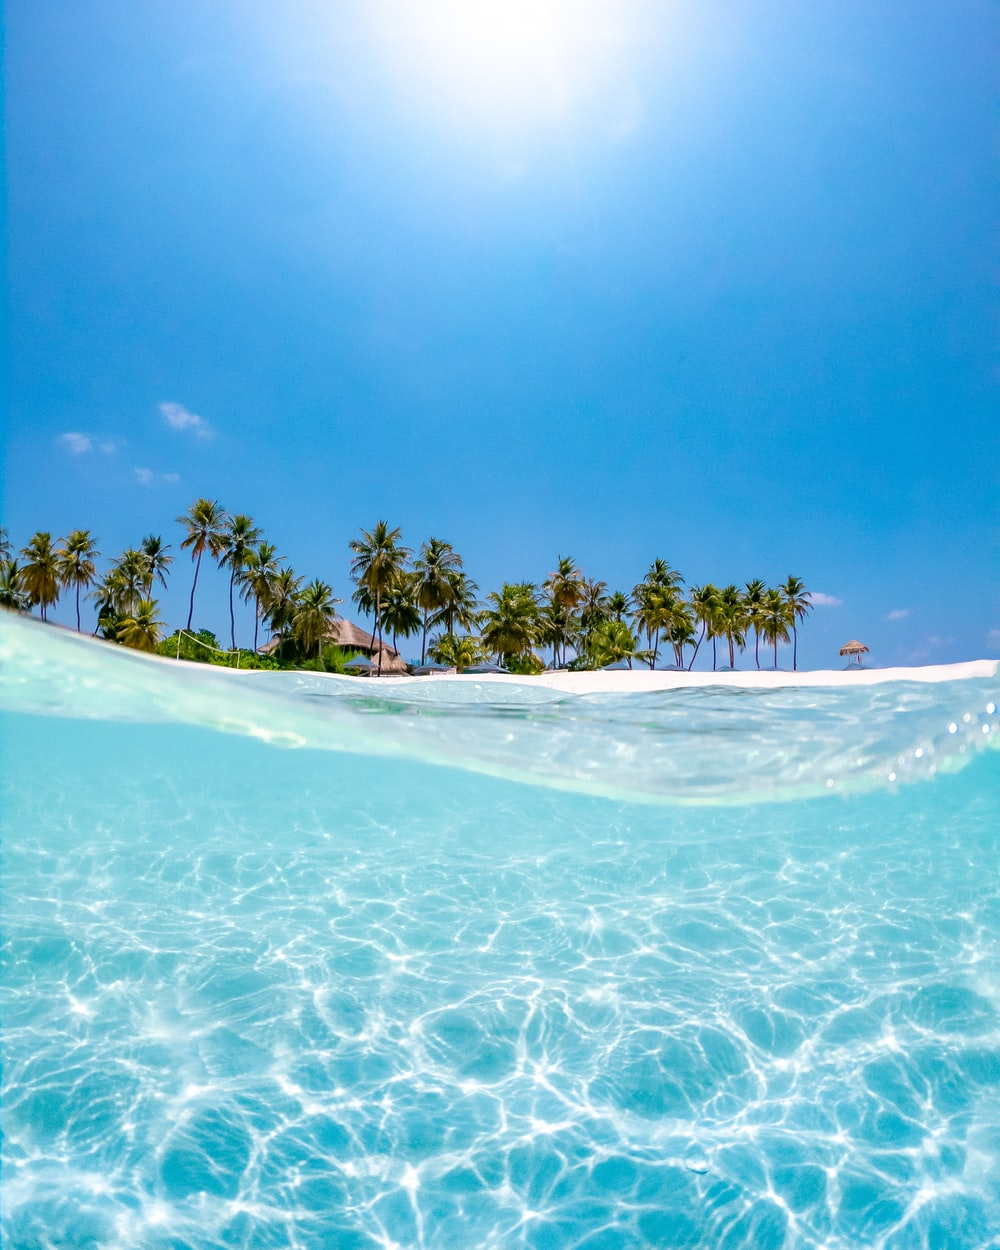 crystal clear water near coconut trees under the sun